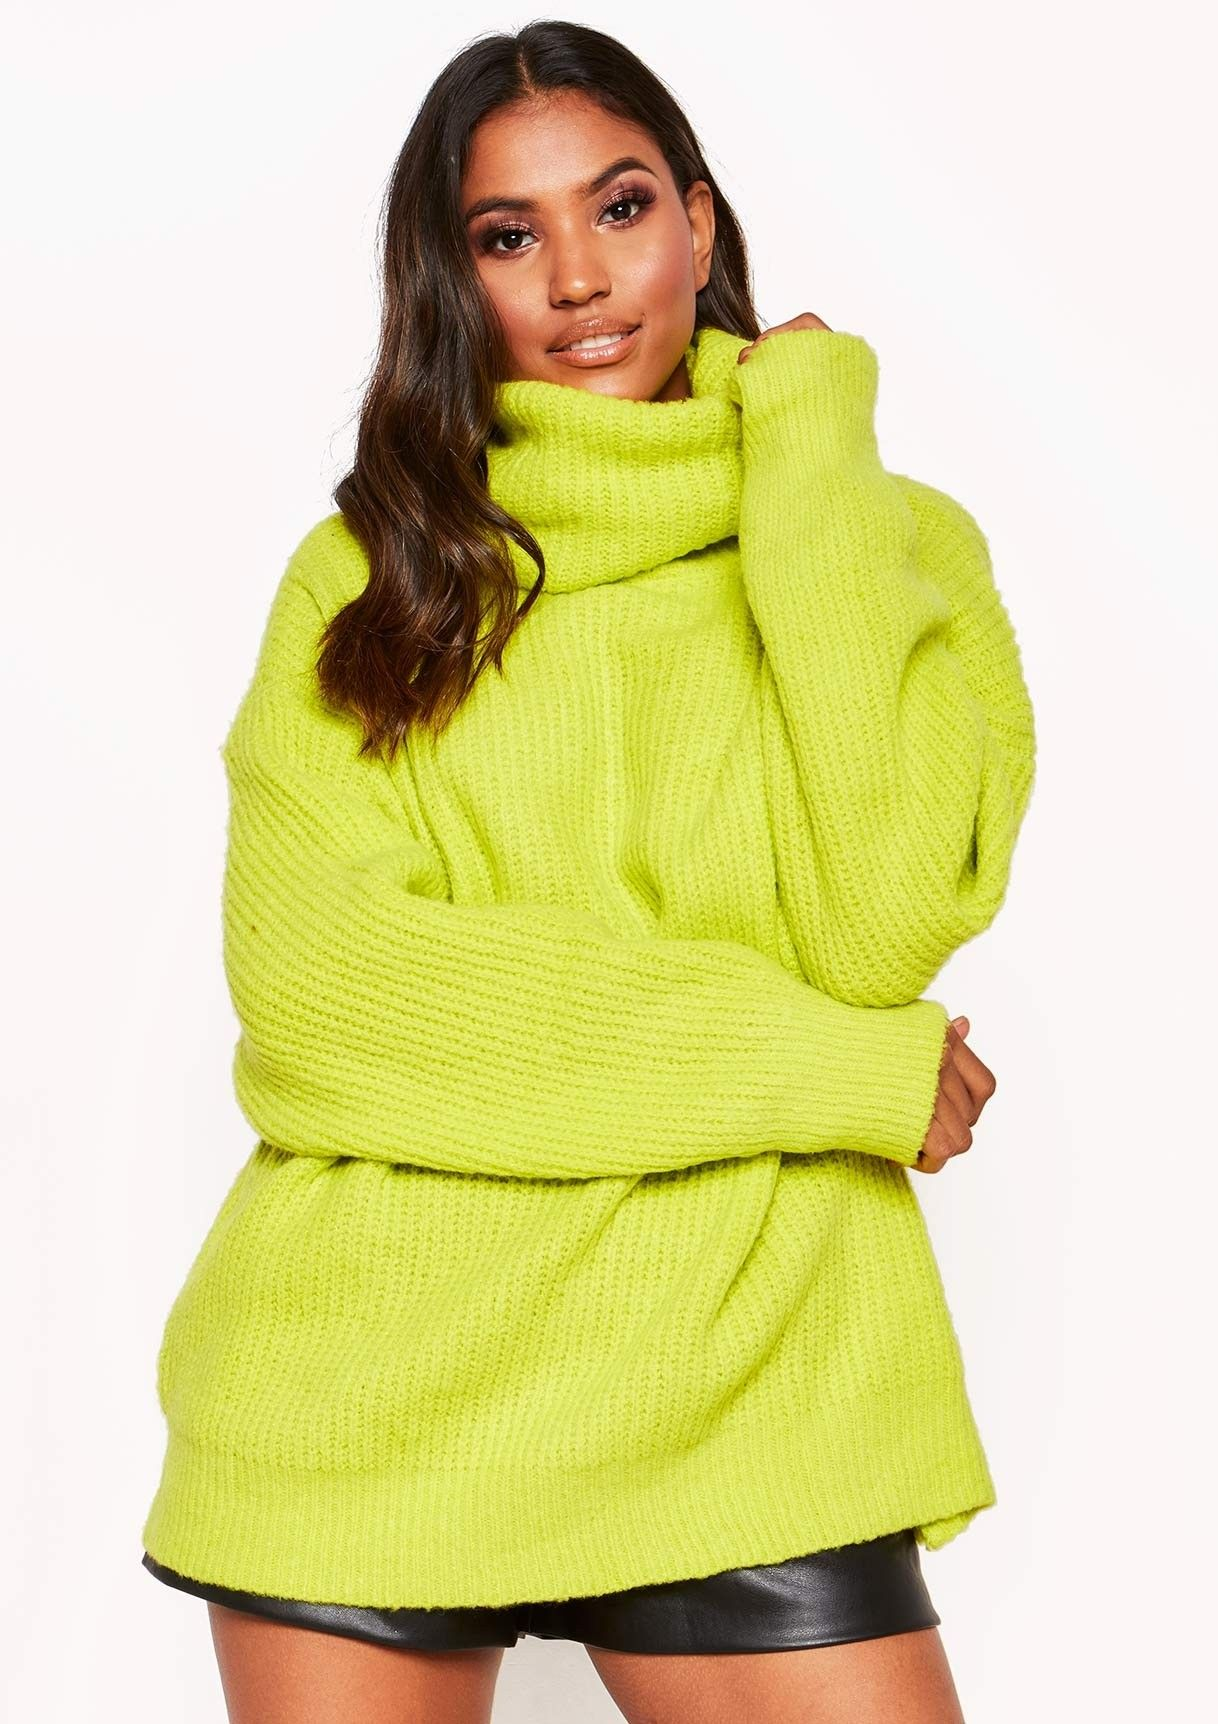 5ec651af96 Missyempire - Neon Yellow Roll Neck Oversized Knit Jumper